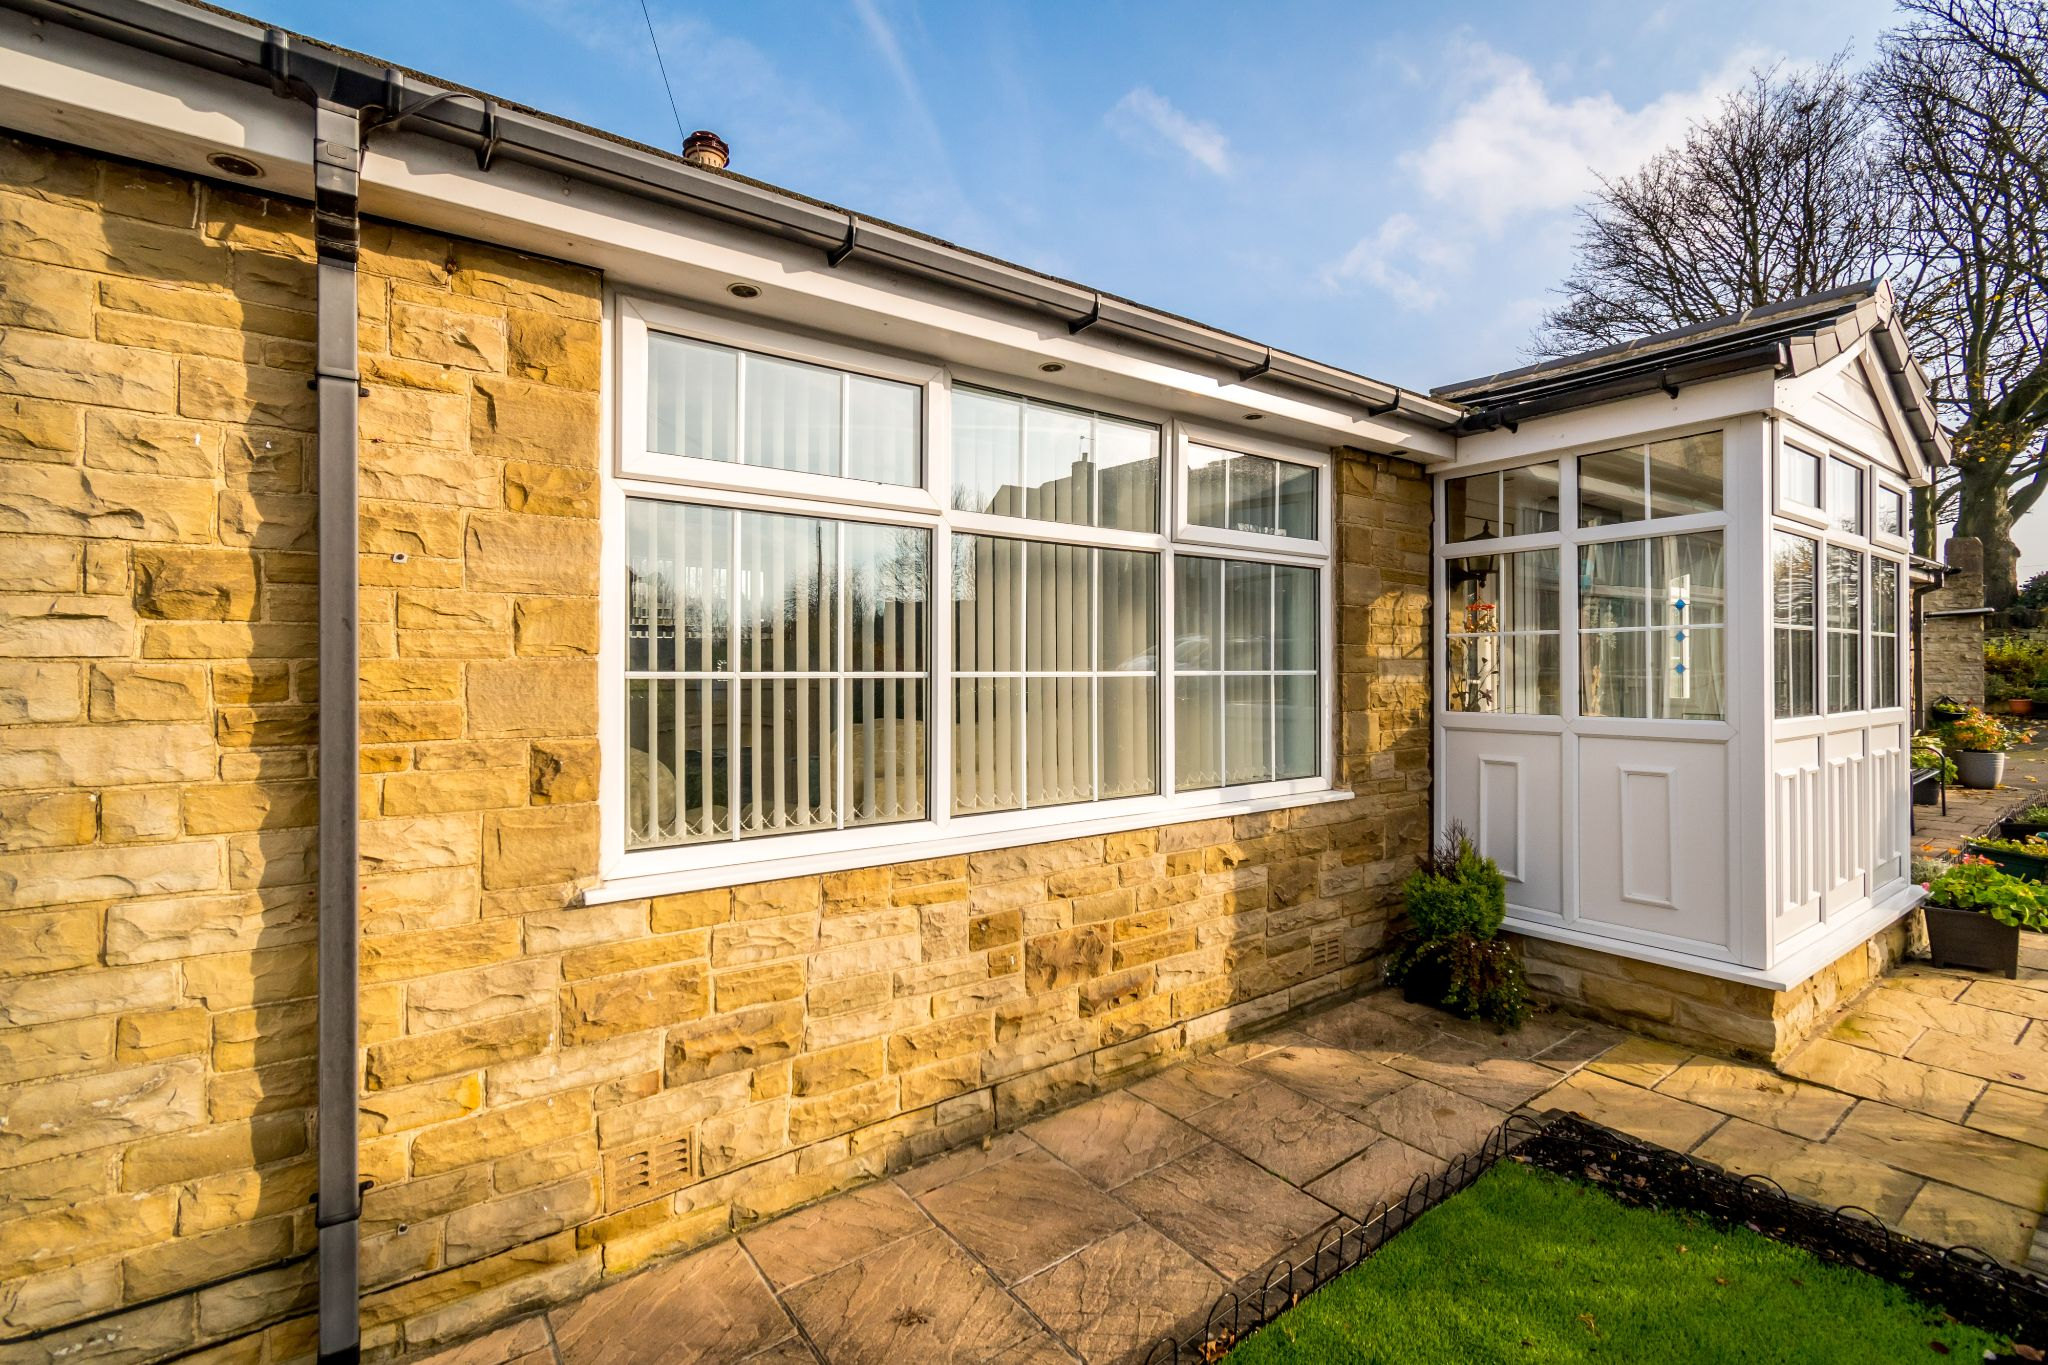 3 bedroom detached bungalow For Sale in Hove Edge - Left side of the porch